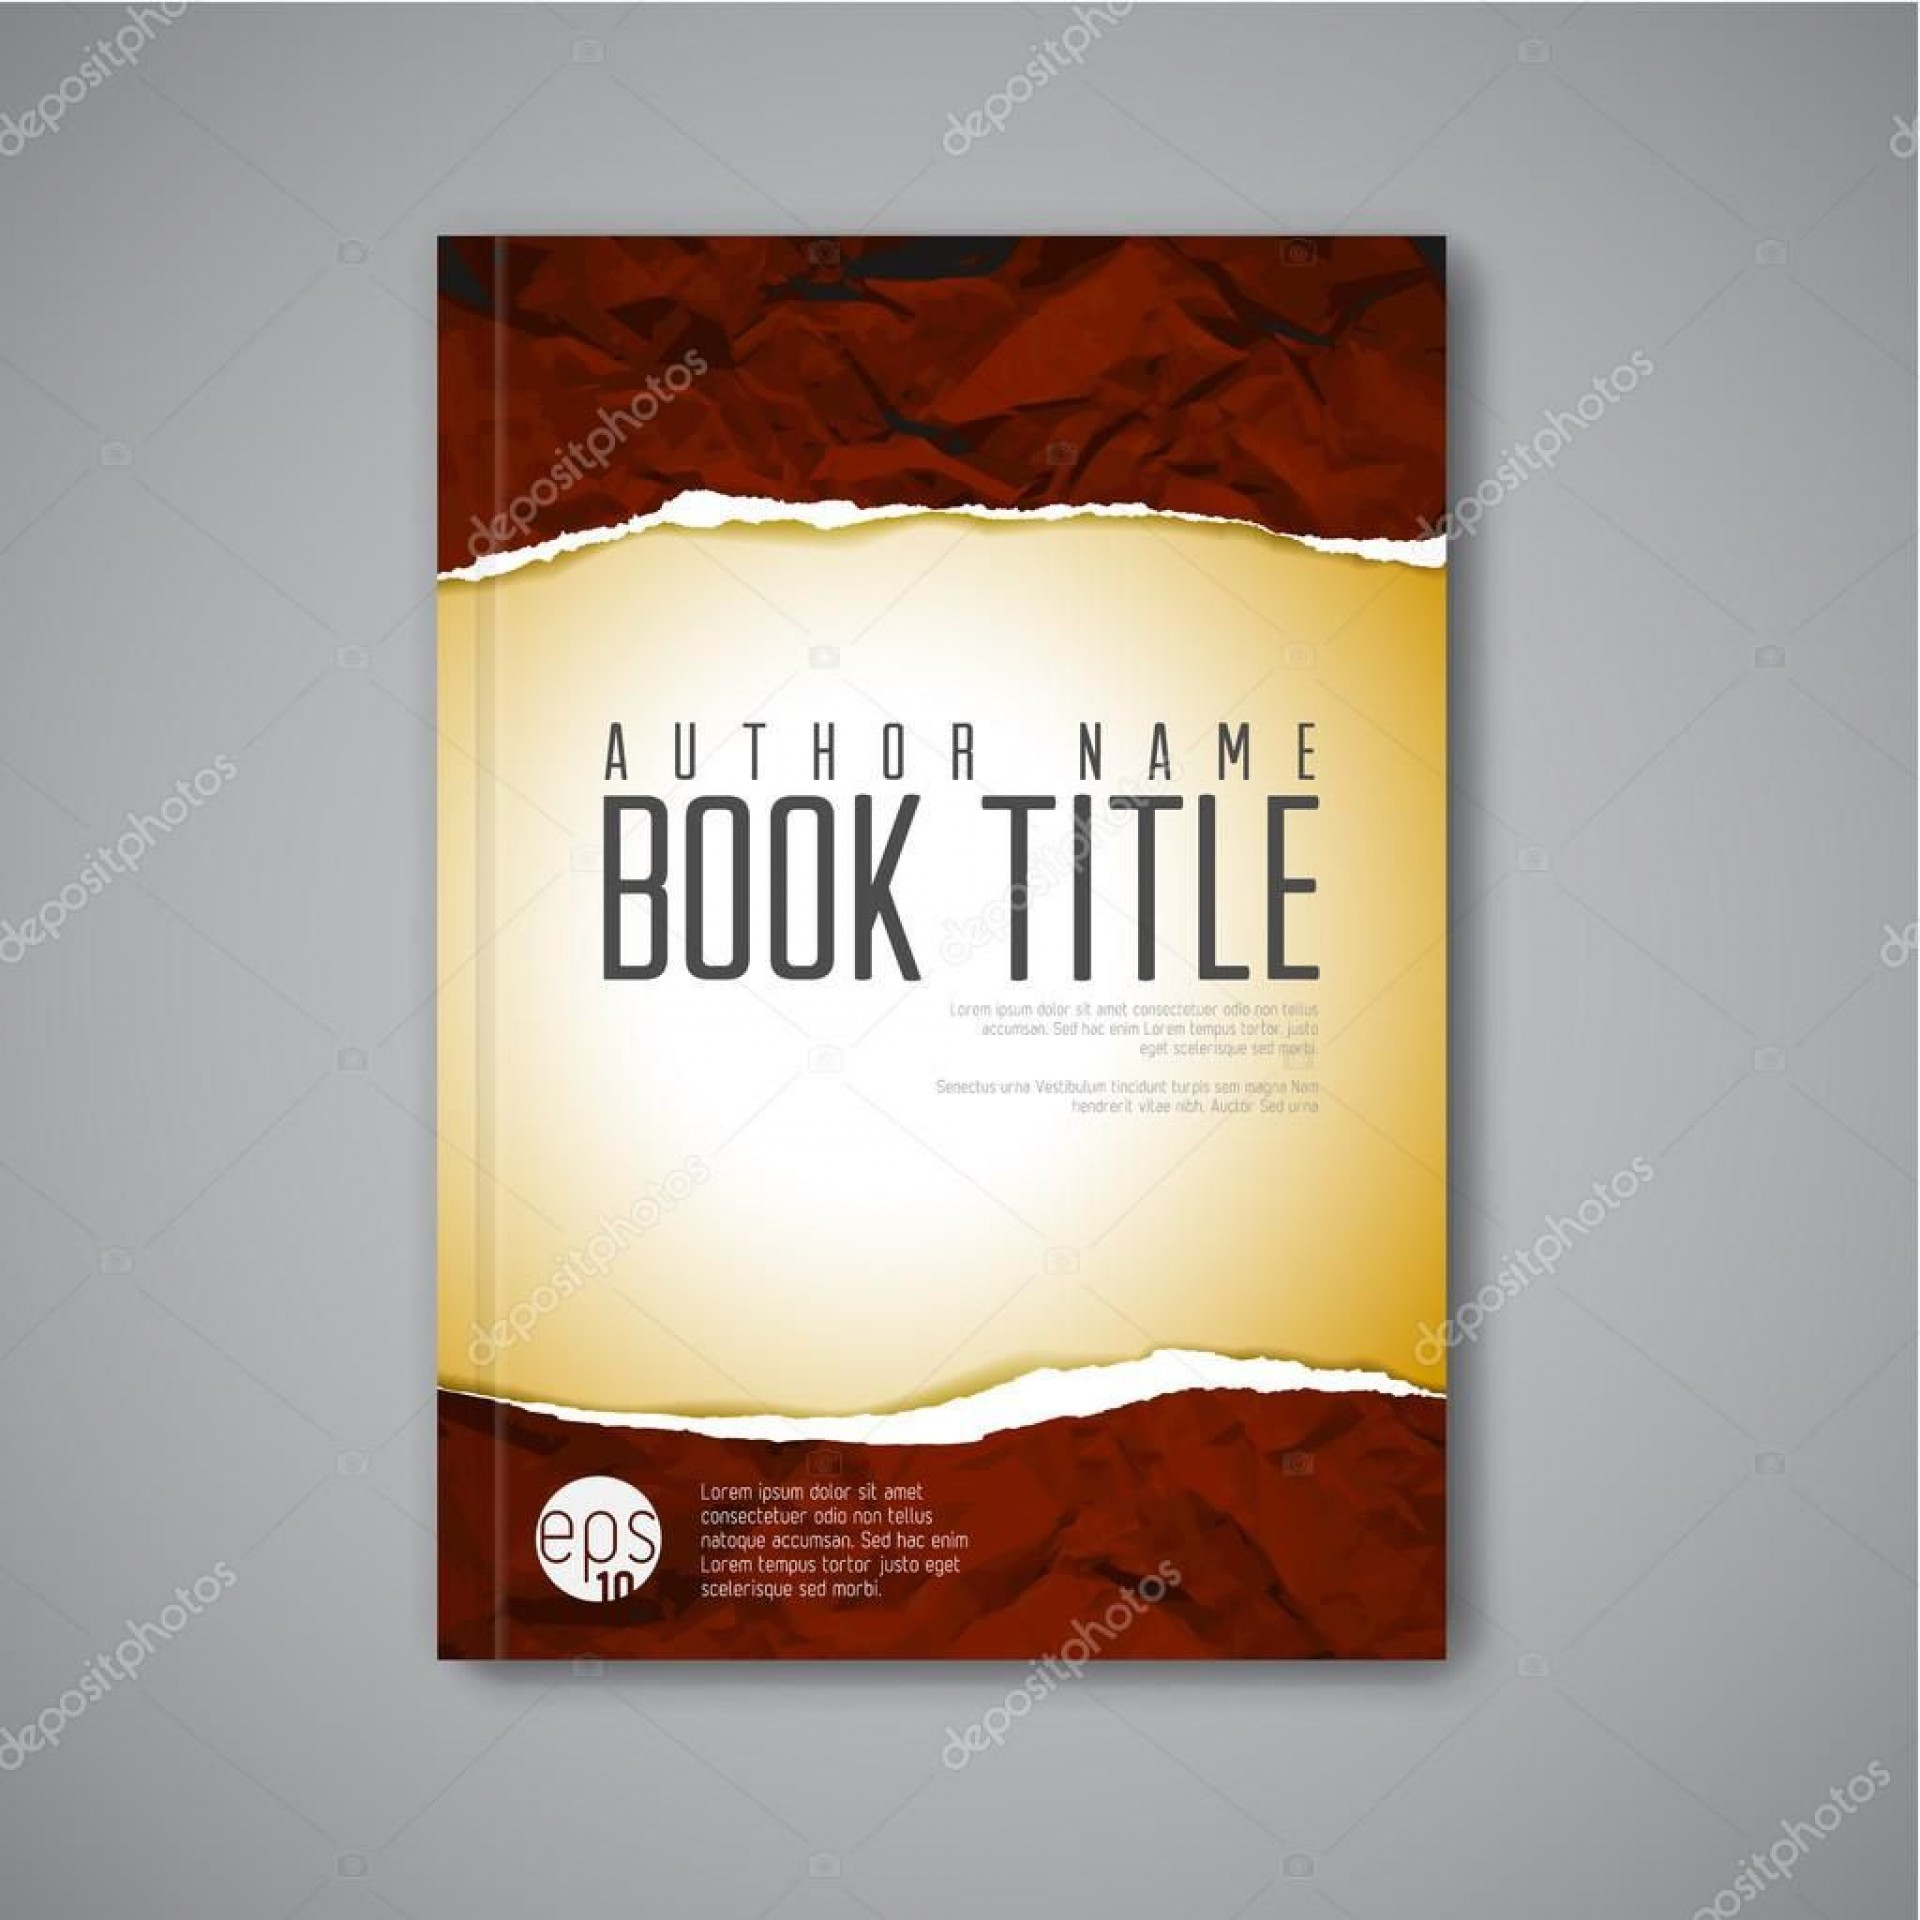 007 Archaicawful Book Front Page Design Template Free Download Photo  Cover Psd1920